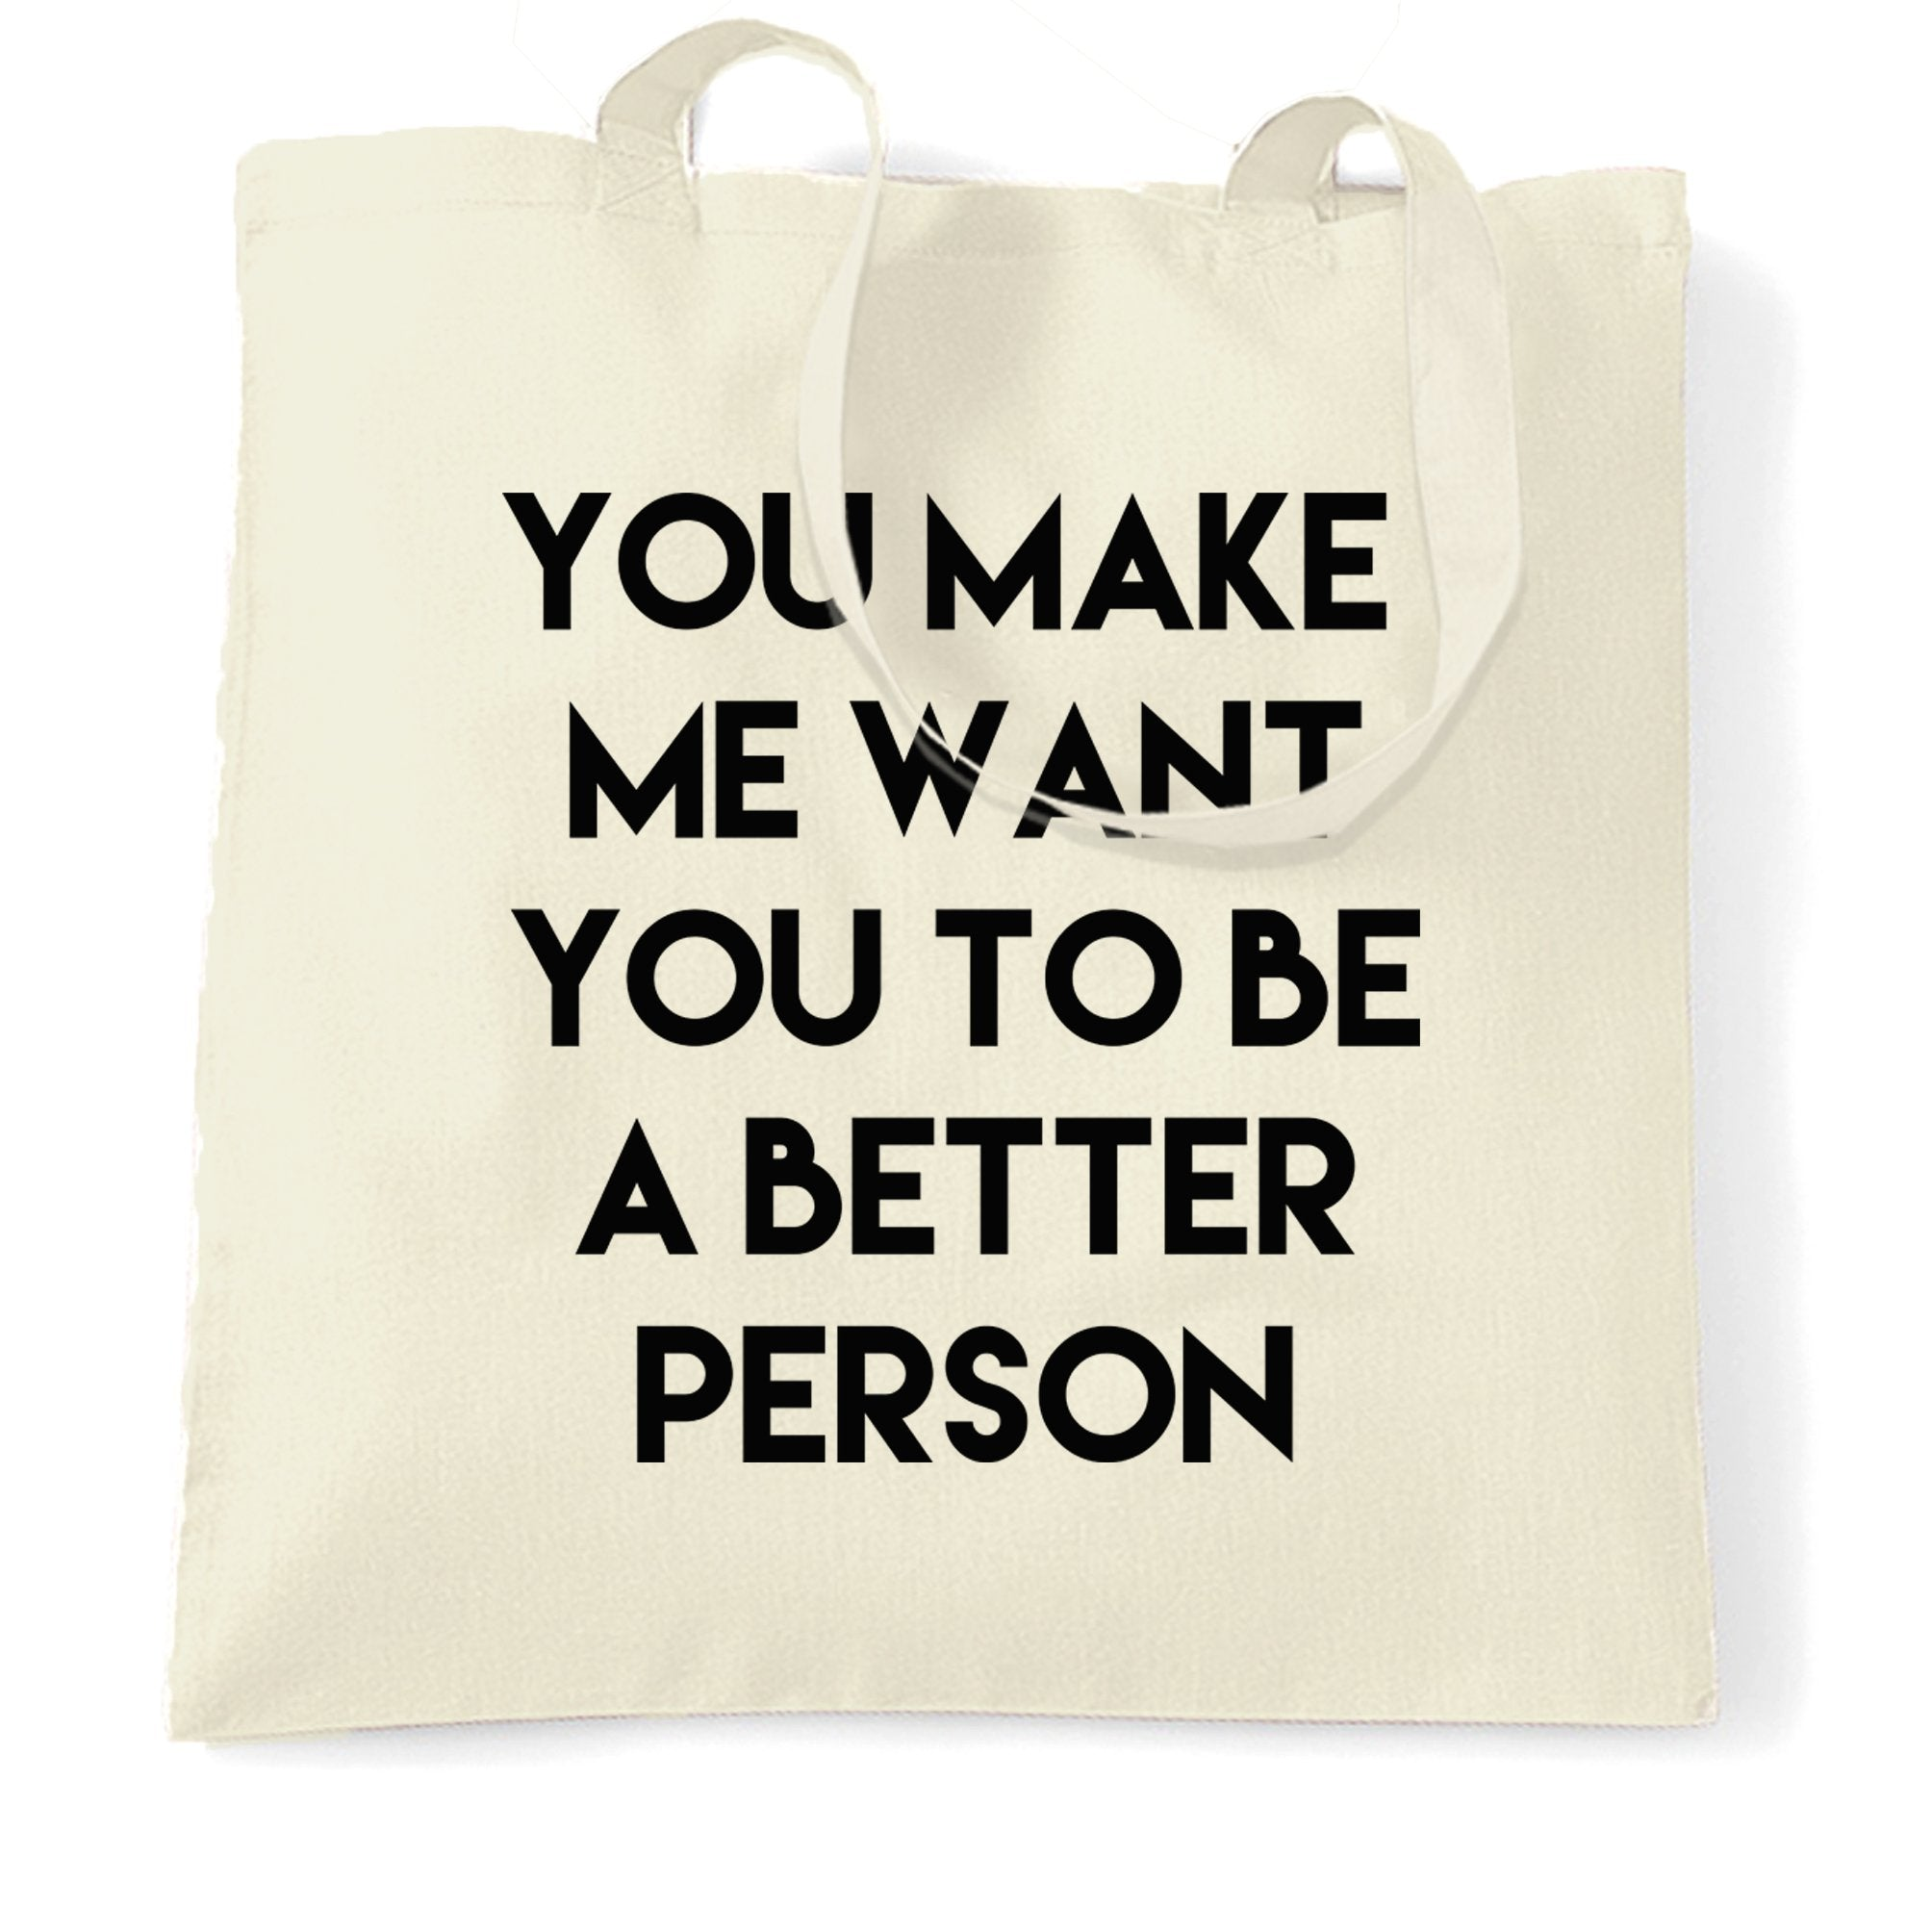 Sassy Tote Bag You Make Me Want You To Be Better Person